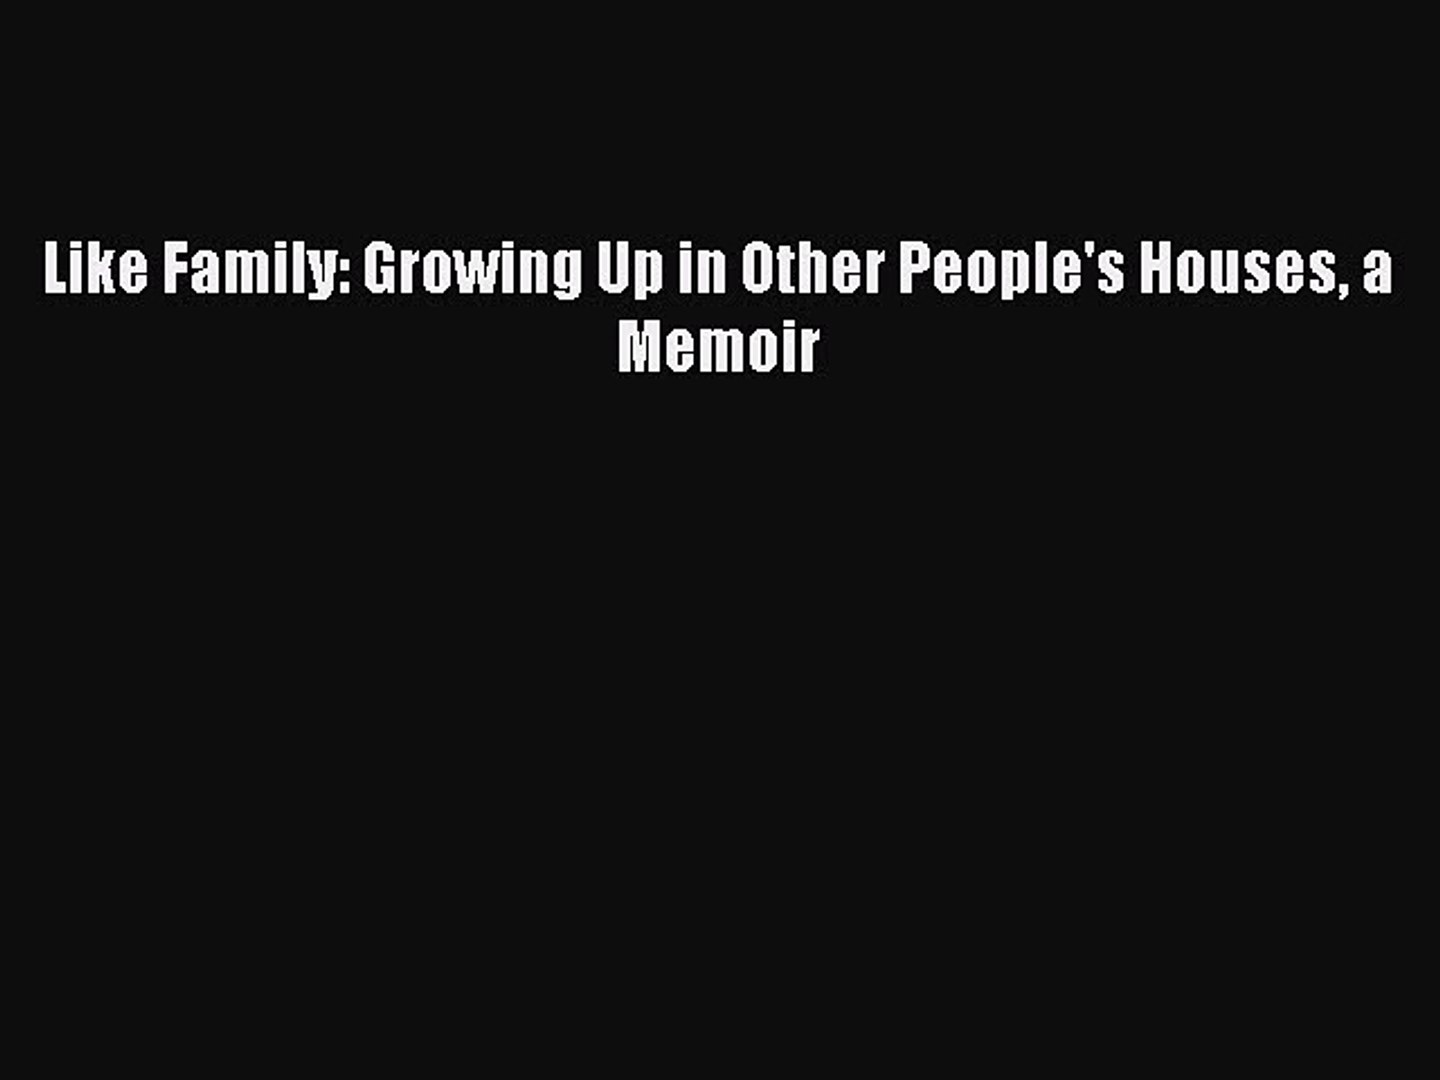 Growing Up in Other Peoples Houses Like Family a Memoir